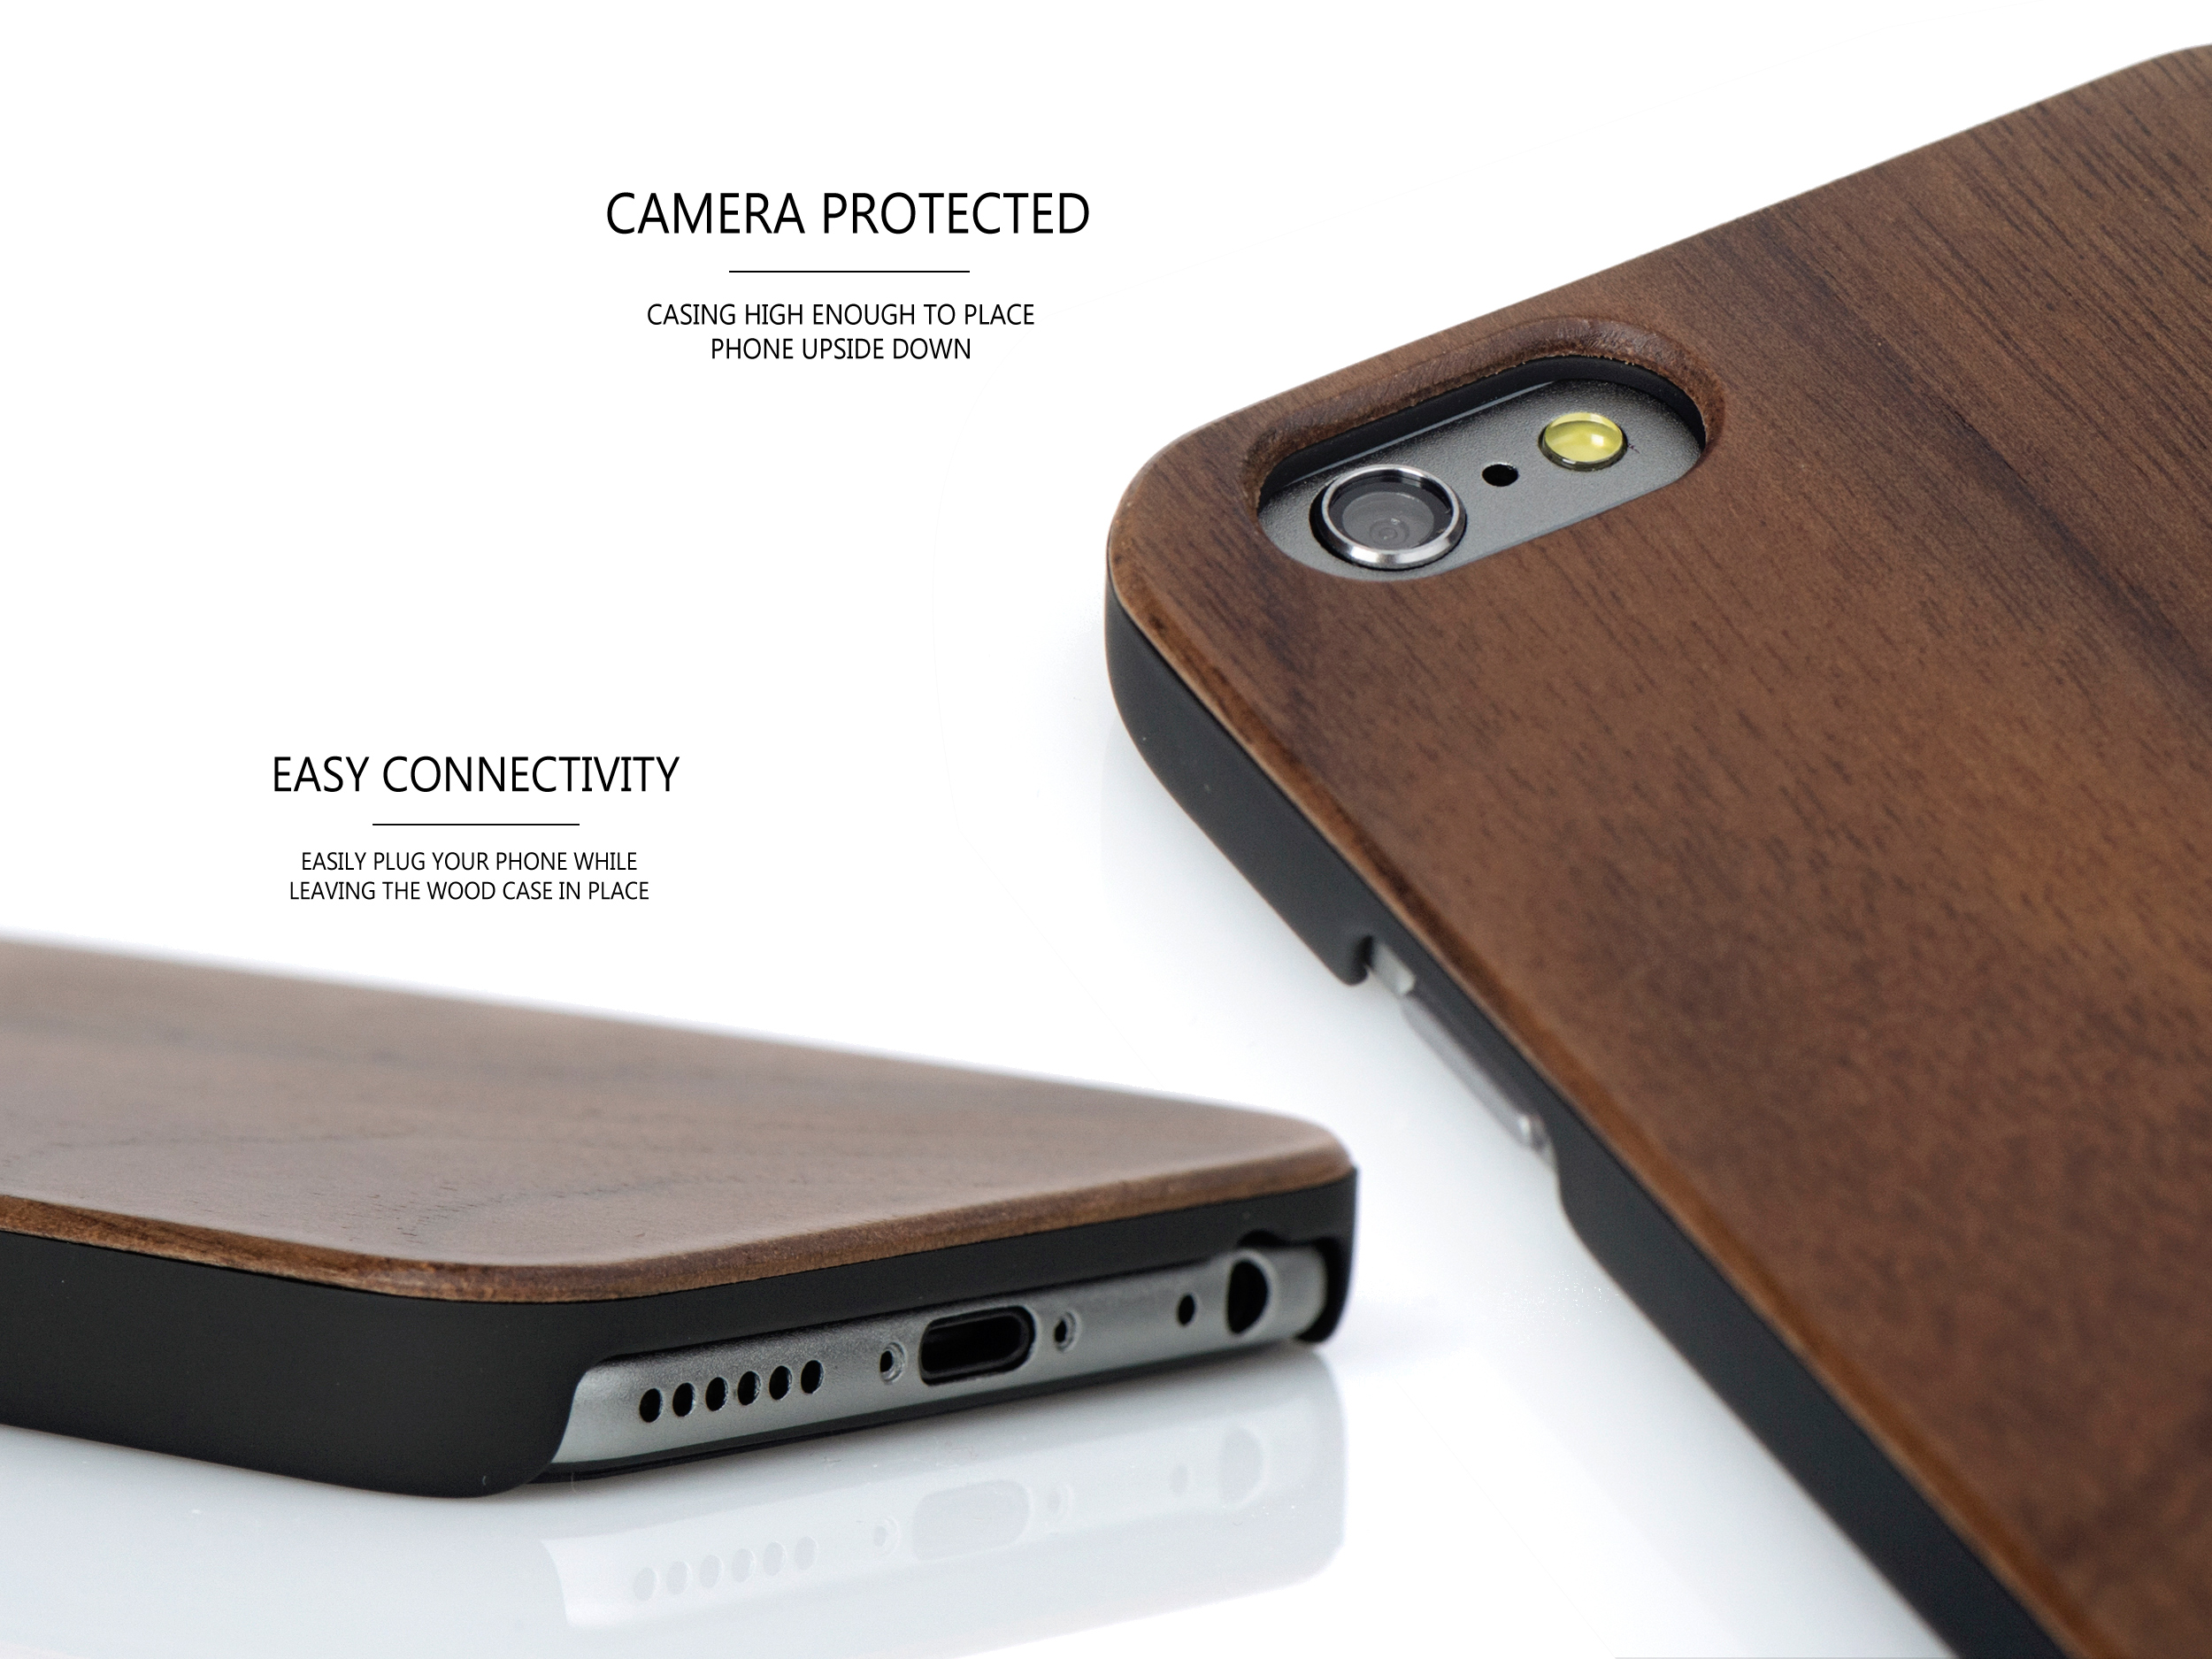 iPhone 6 case walnut wood camera